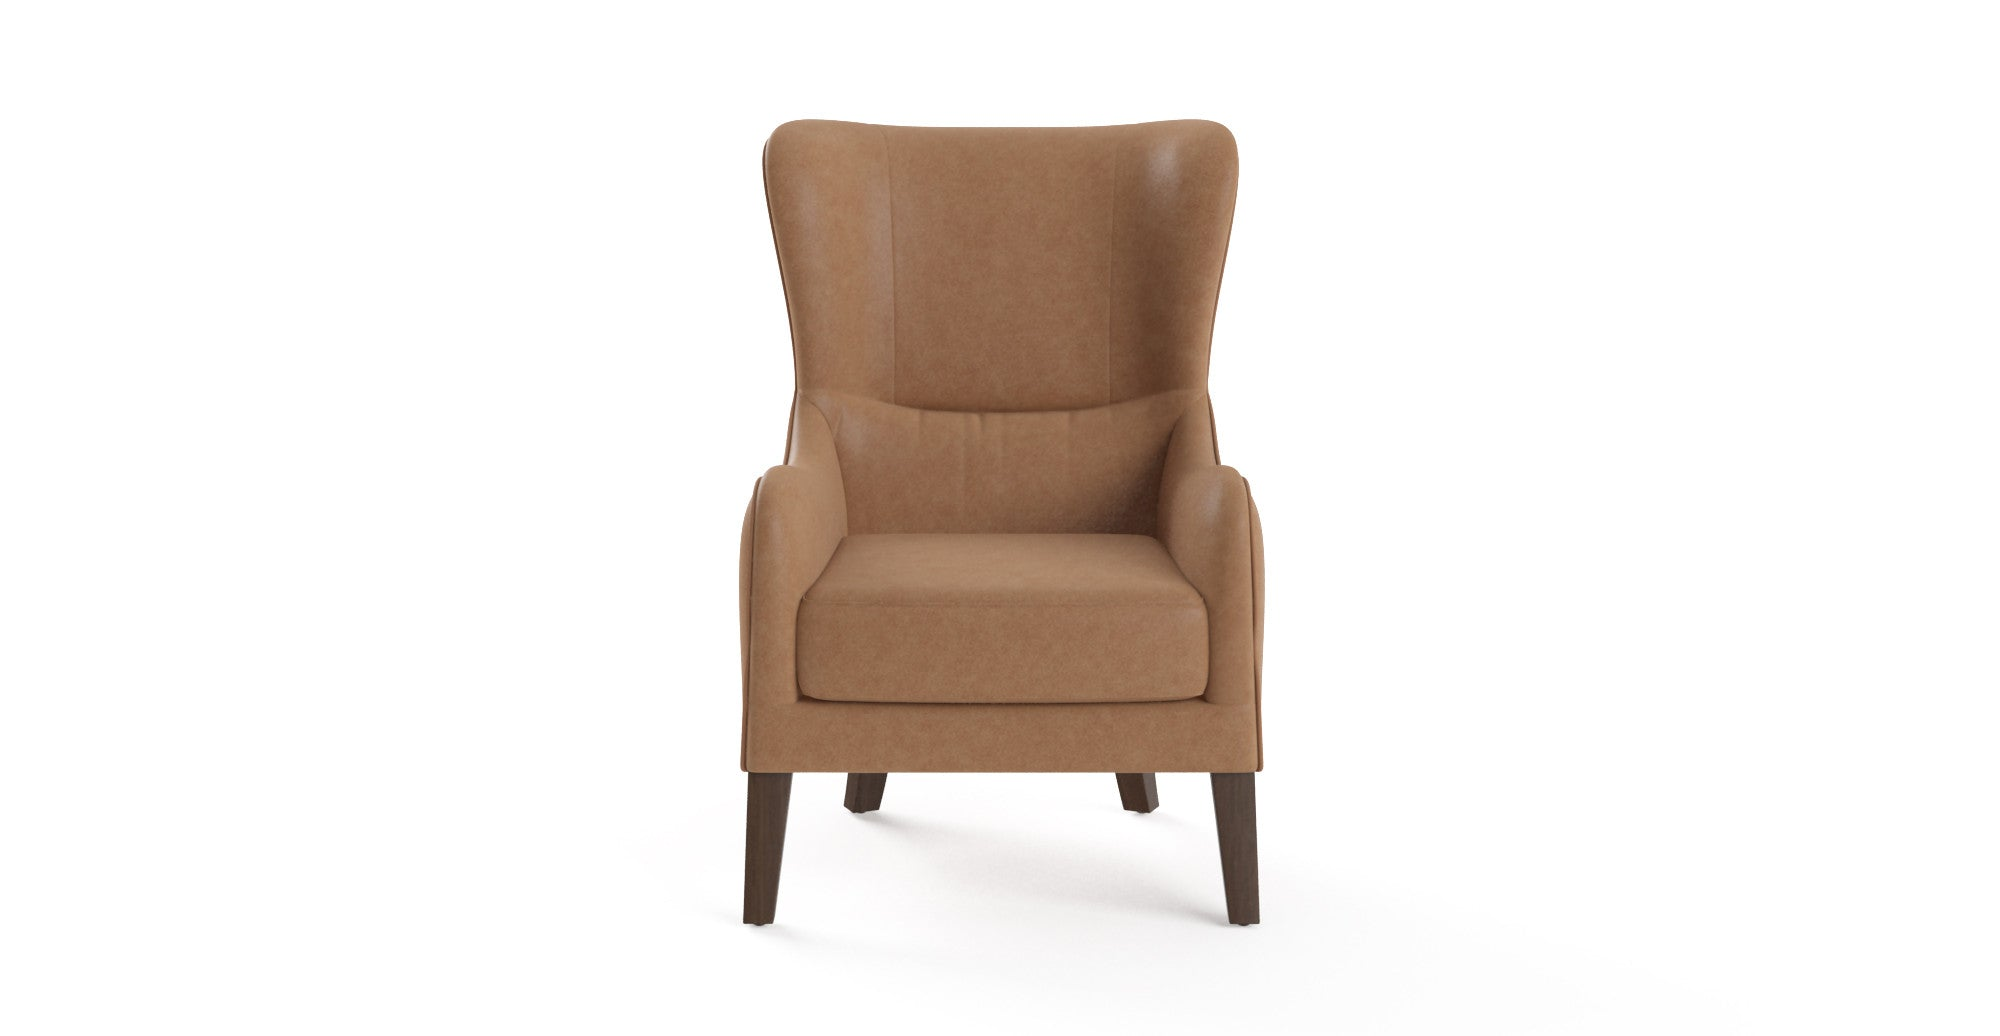 Occasional Bedroom Chairs Occasional Chairs Accent Chairs Melbourne Sydney Brisbane